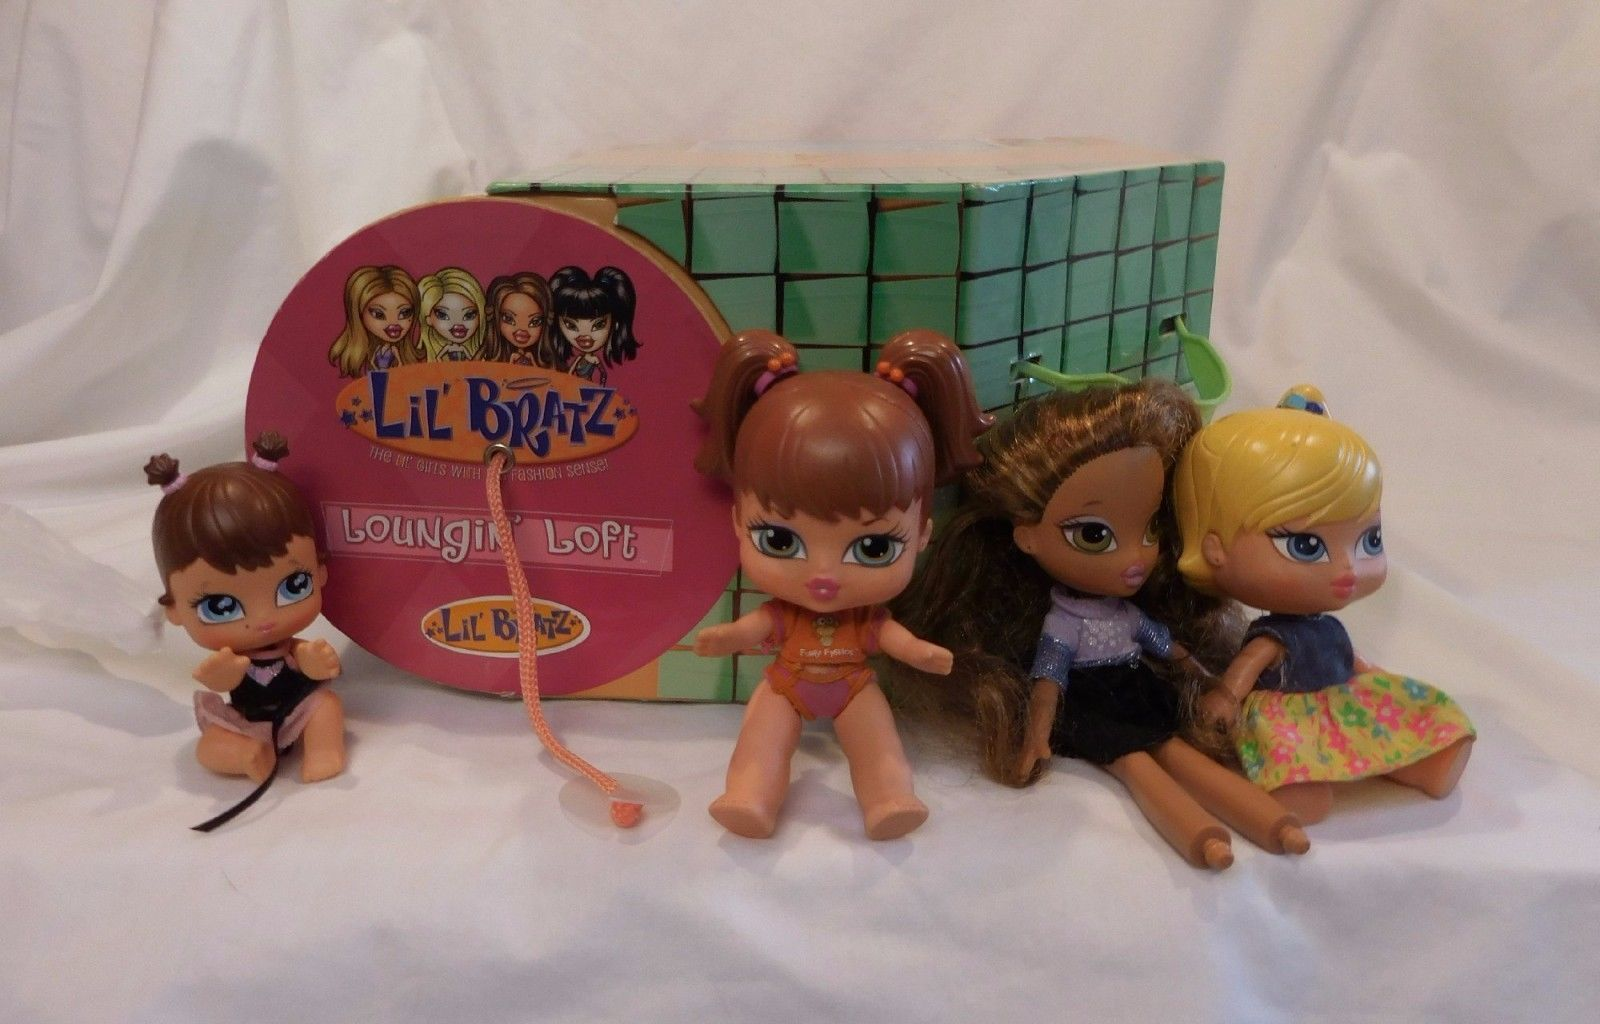 Primary image for 2002 Lil' Bratz Loungin' Loft Carrying Case for Dolls With Dolls by MGA